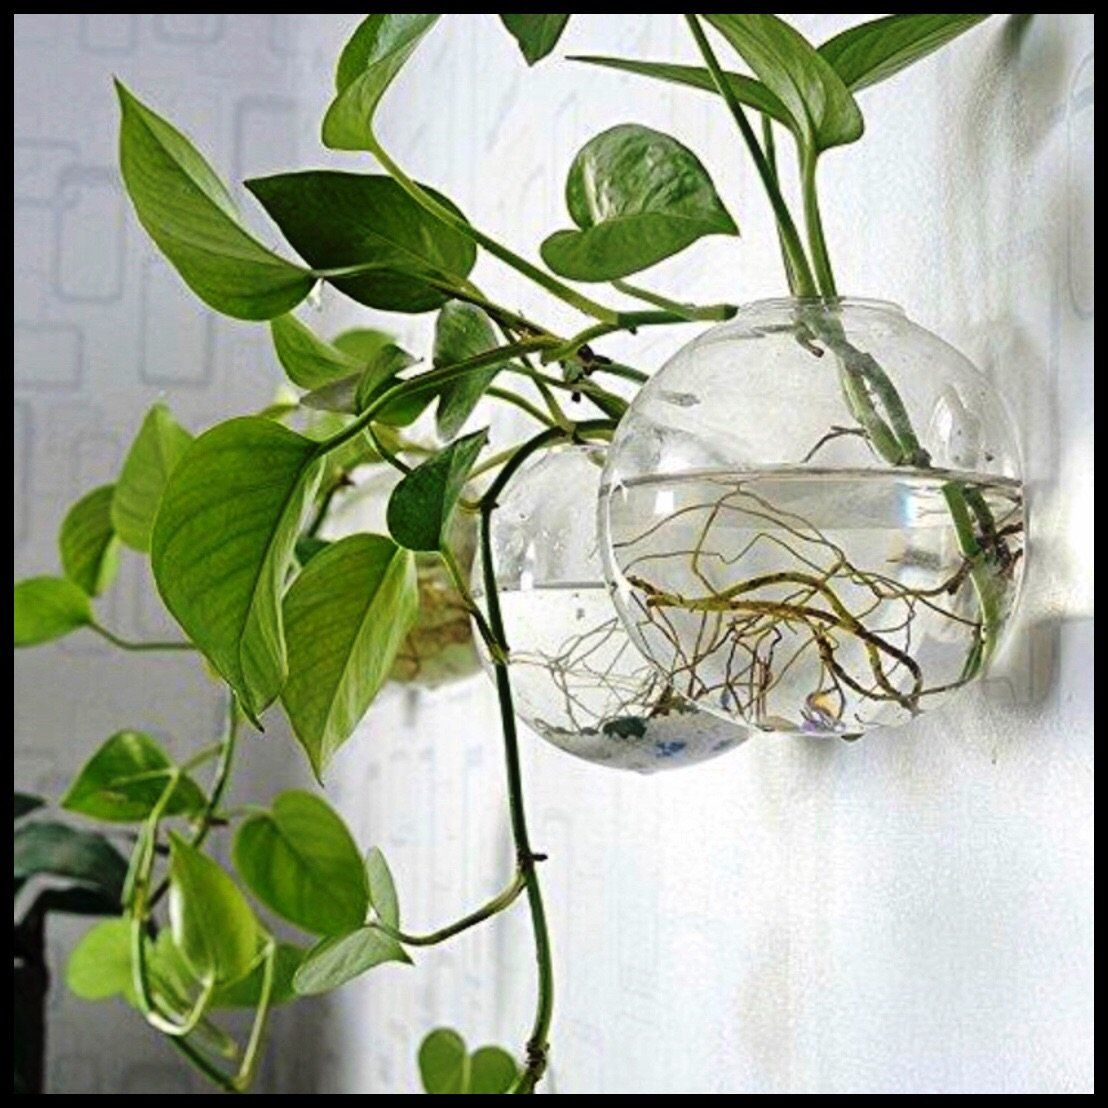 6 Round Glass Wall Hanging Planters Farm Nevada Gardeners Start Here Hanging Glass Planters Plant Vase Hanging Air Plants